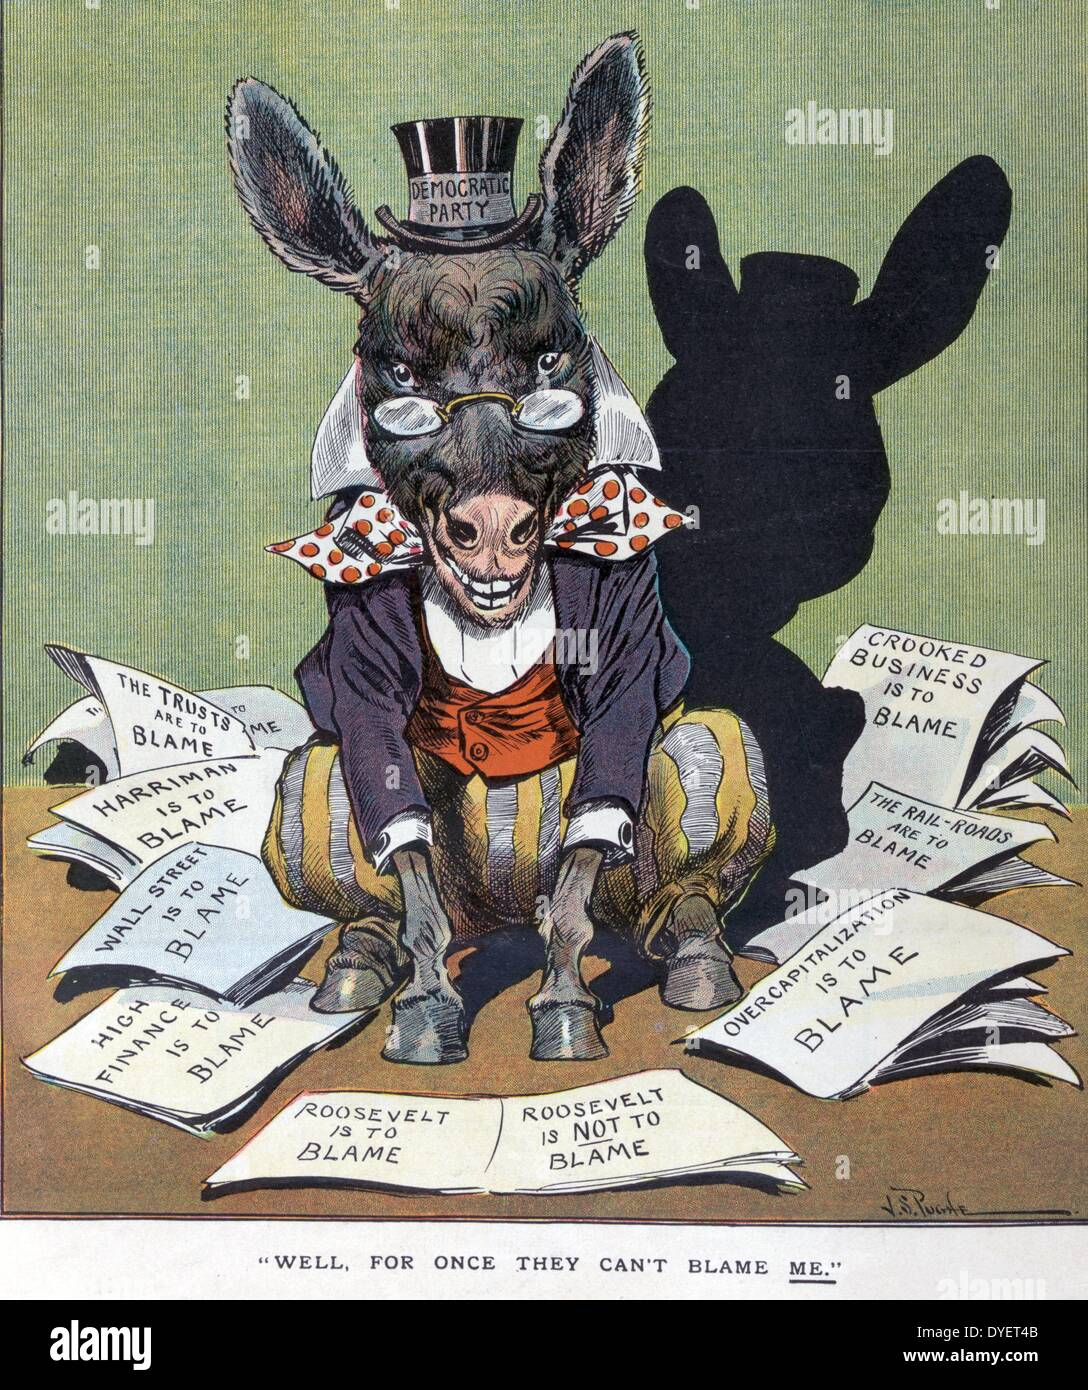 Well, for once they can't blame me by J.S. Pughe 1907. shows the Democratic donkey labelled Democratic Party sitting among - Stock Image